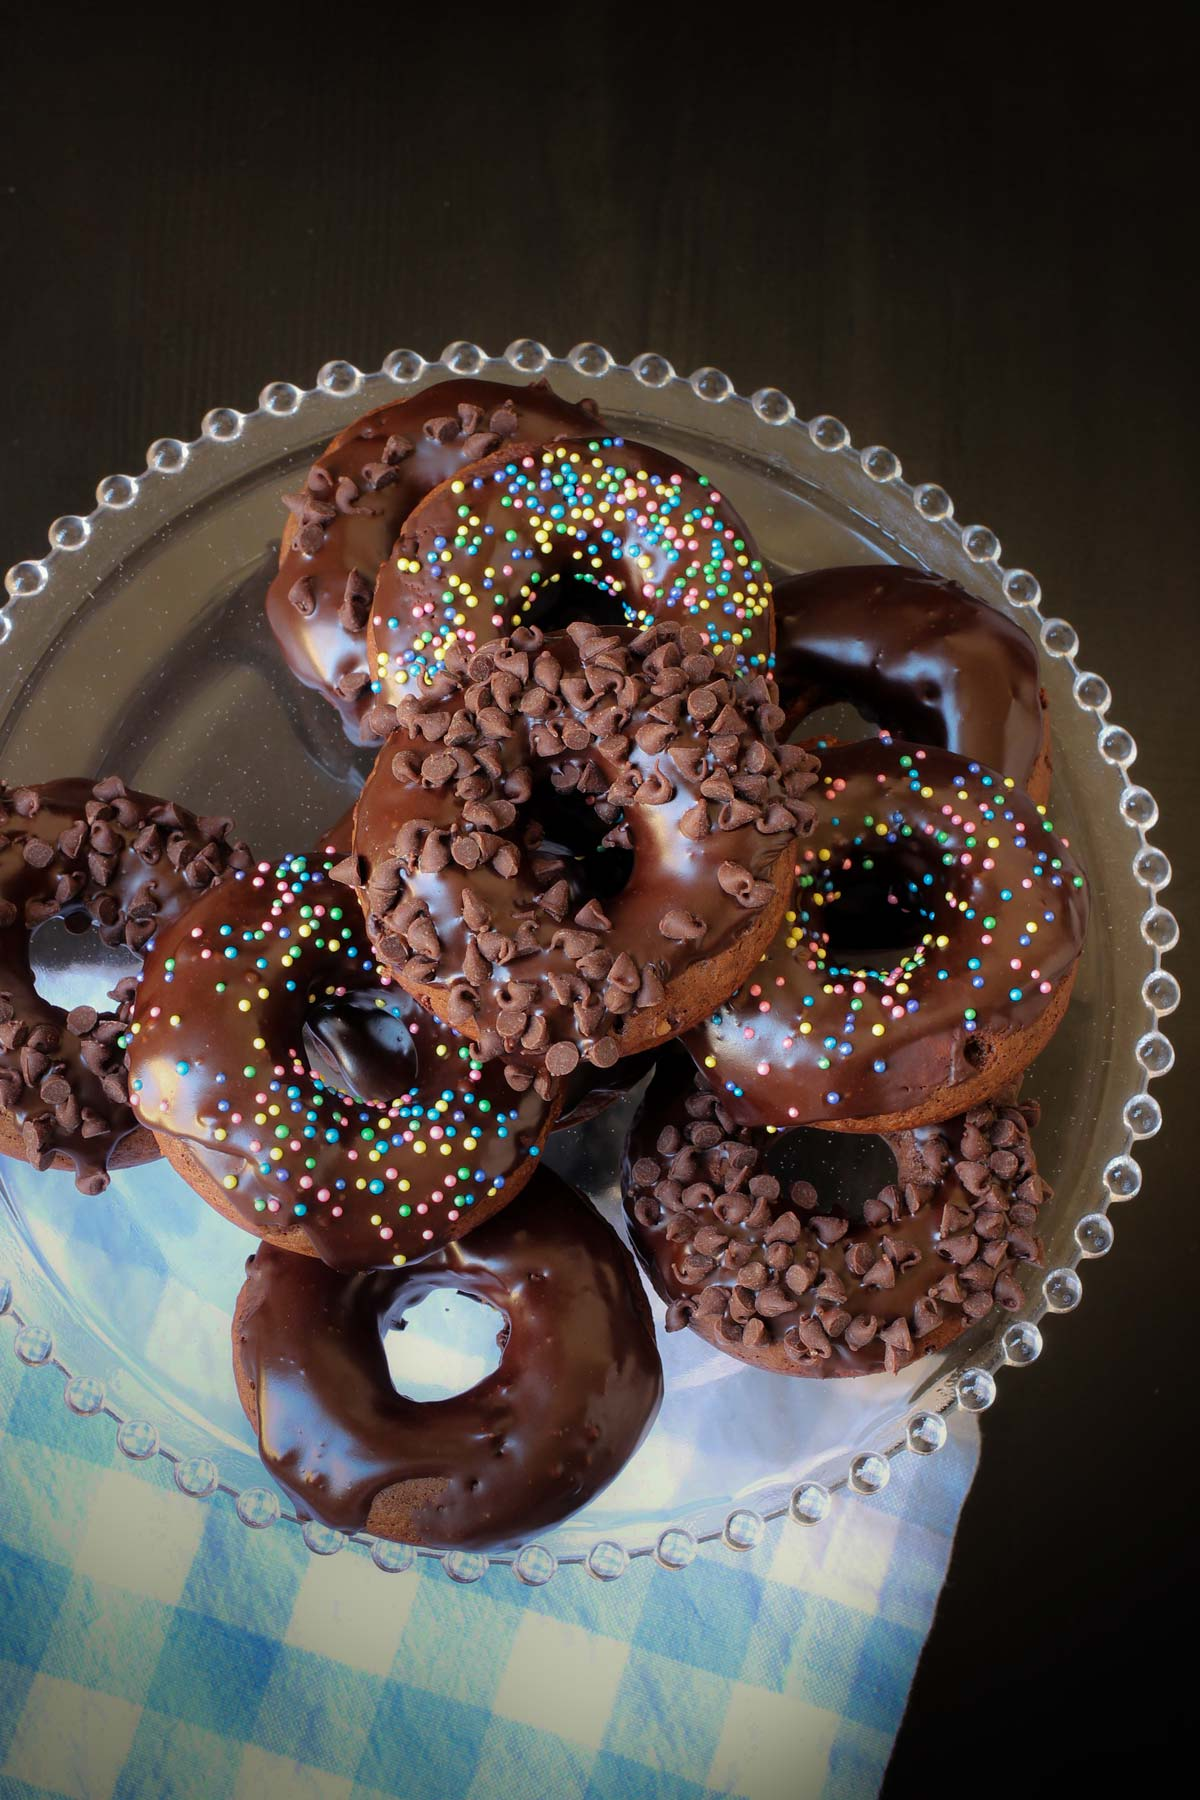 overhead shot of a stack of chocolate donuts on a cake stand with a blue check napkin.